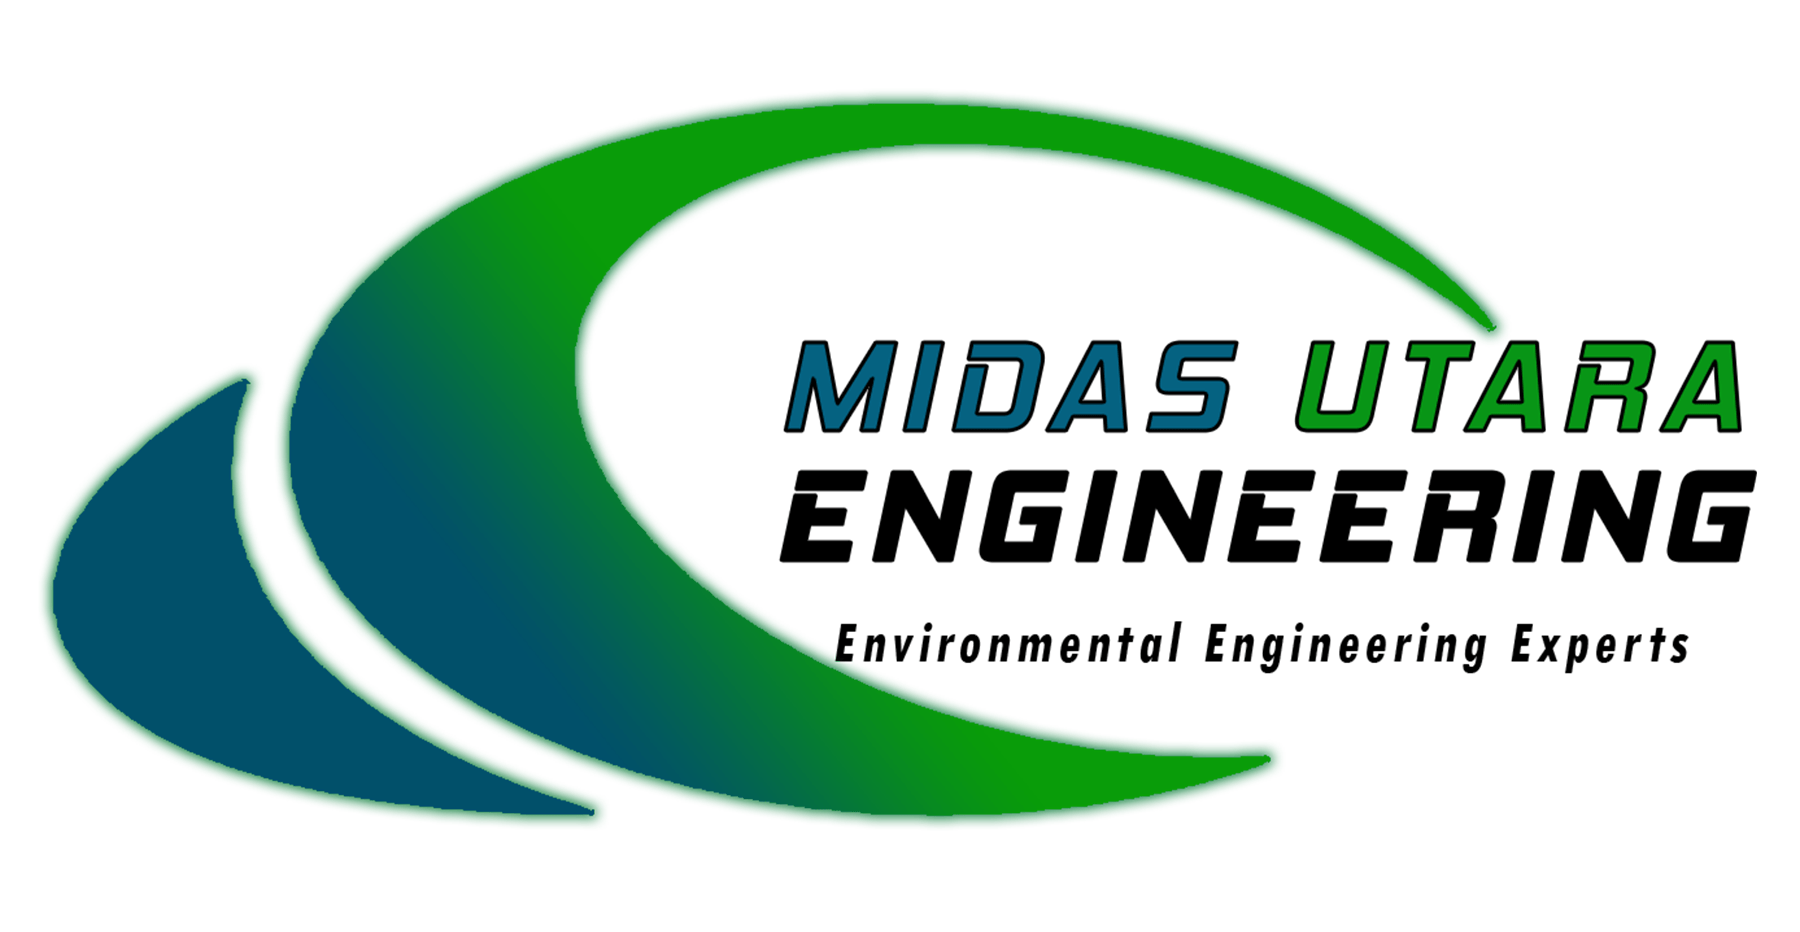 Midas Utara Engineering Sdn Bhd Environmental Engineering Experts